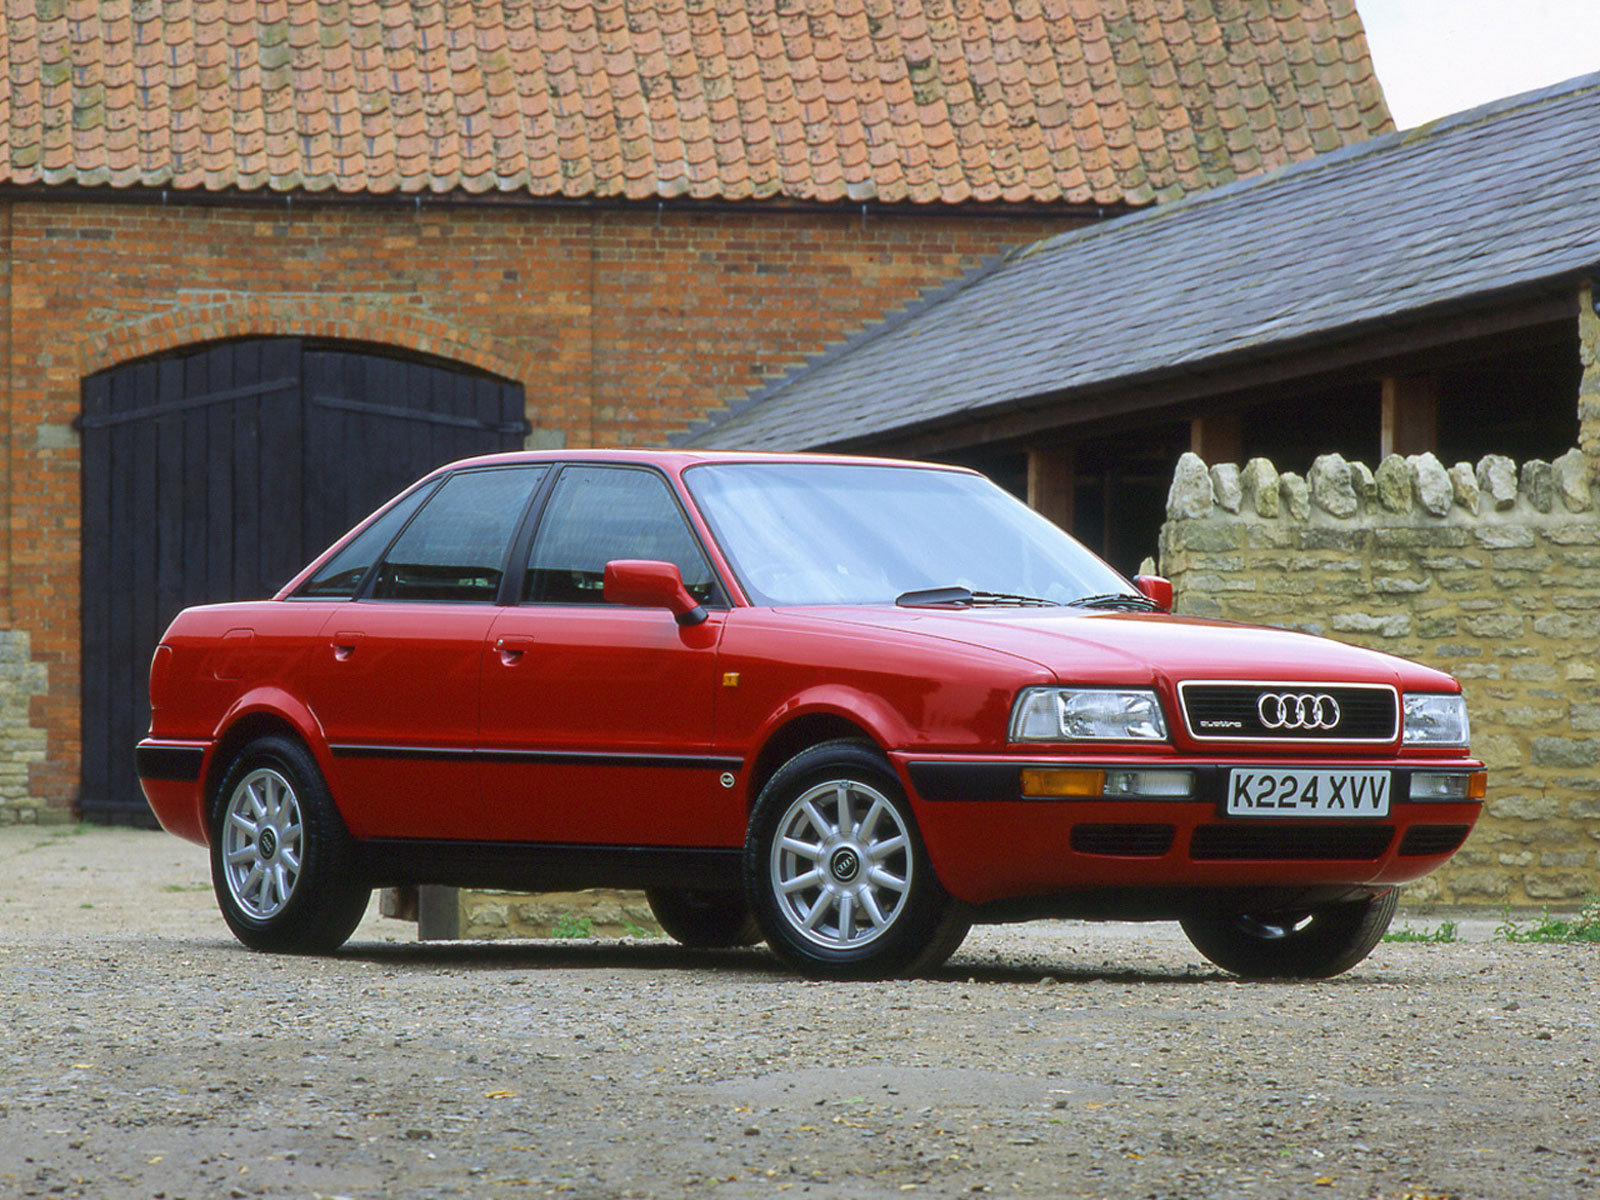 3dtuning of audi 80 sedan 1991 unique on line car configurator for more than 600. Black Bedroom Furniture Sets. Home Design Ideas